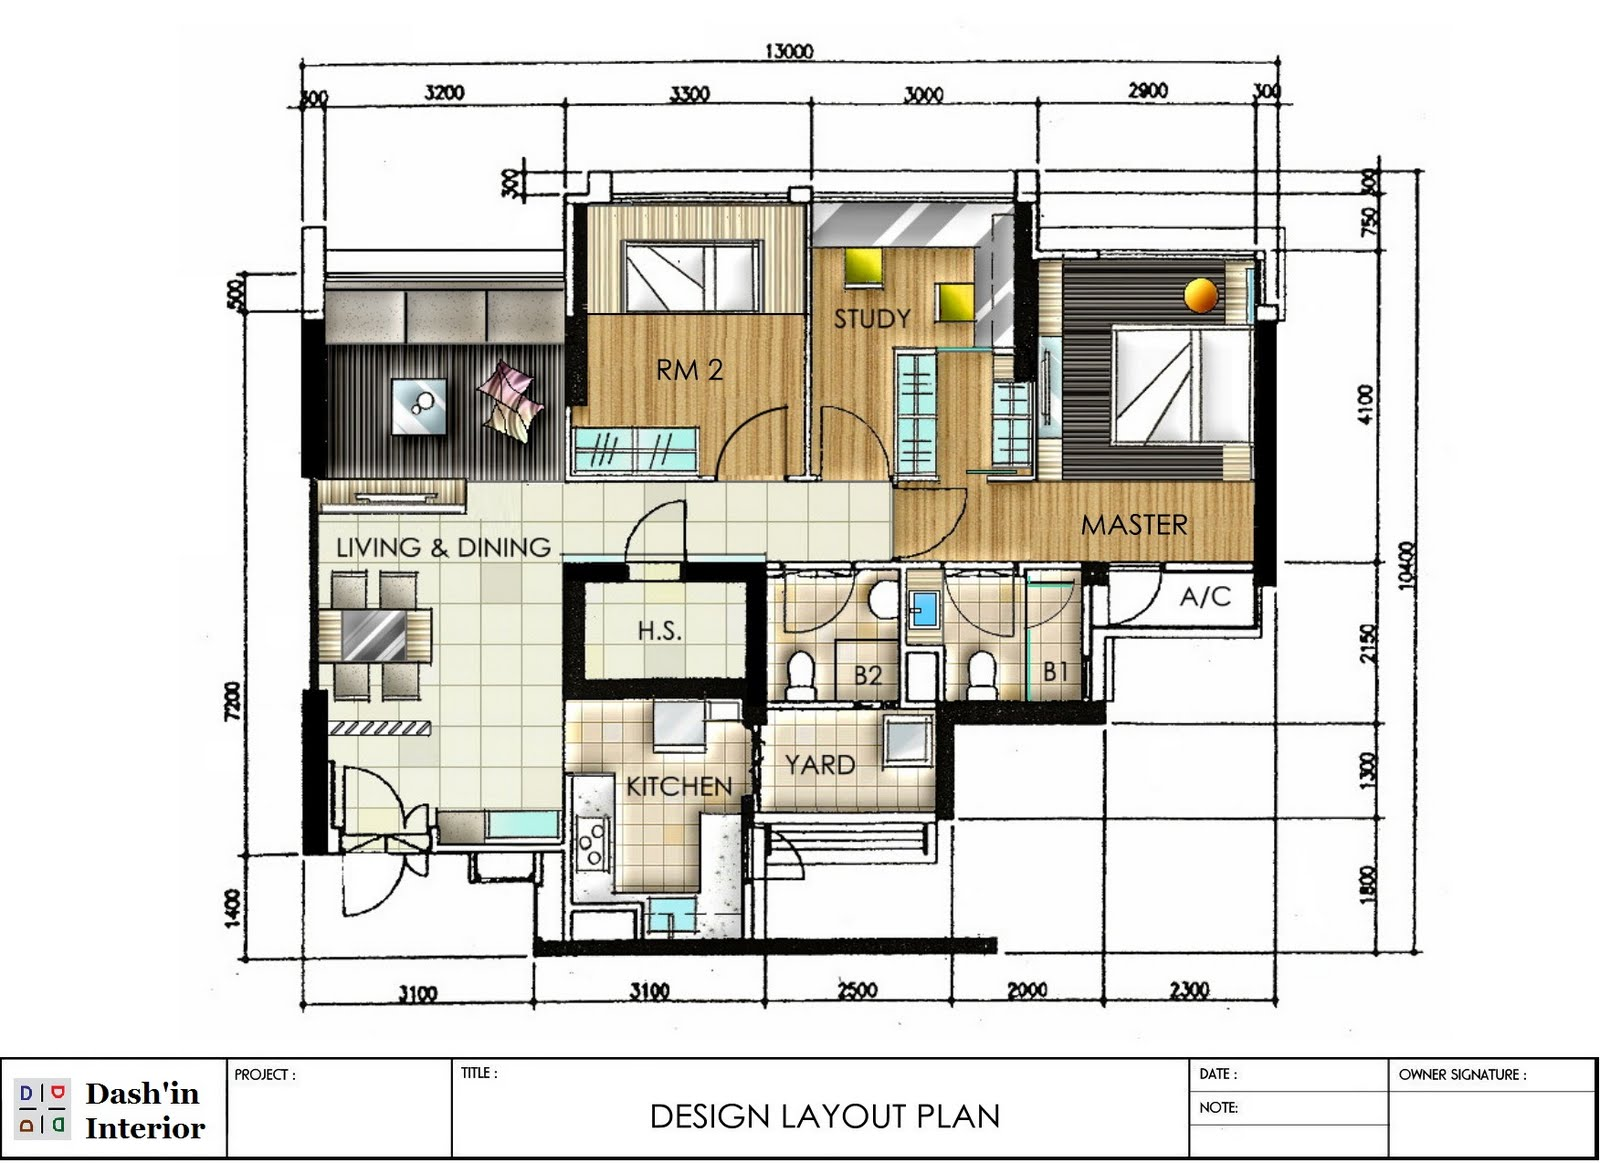 Dash 39 in interior hand drawn designs floor plan layout Create house floor plans free